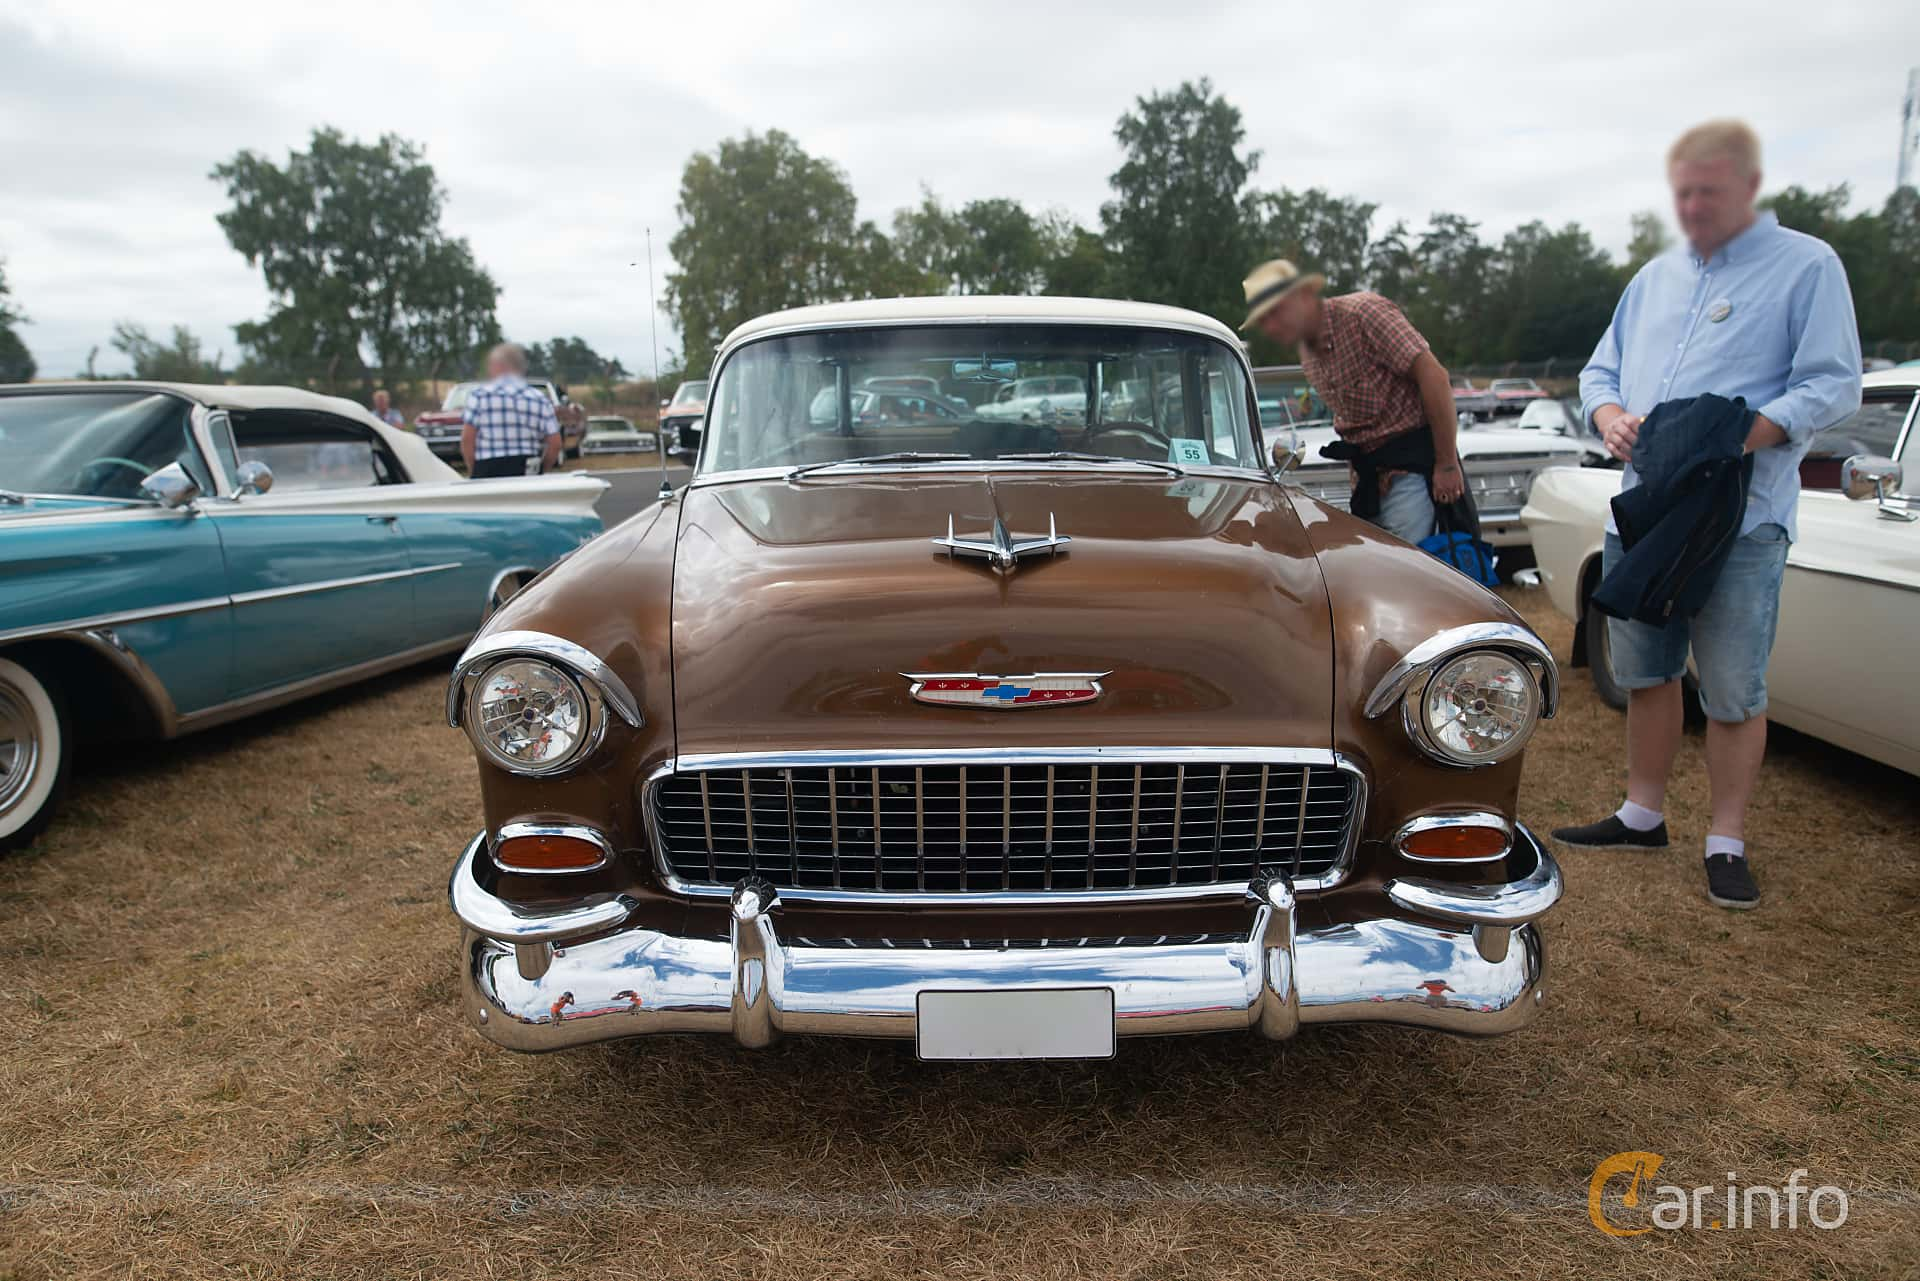 Chevrolet Bel Air Nomad 4.3 V8 Powerglide, 183hp, 1955 at Wheels & Wings 2018